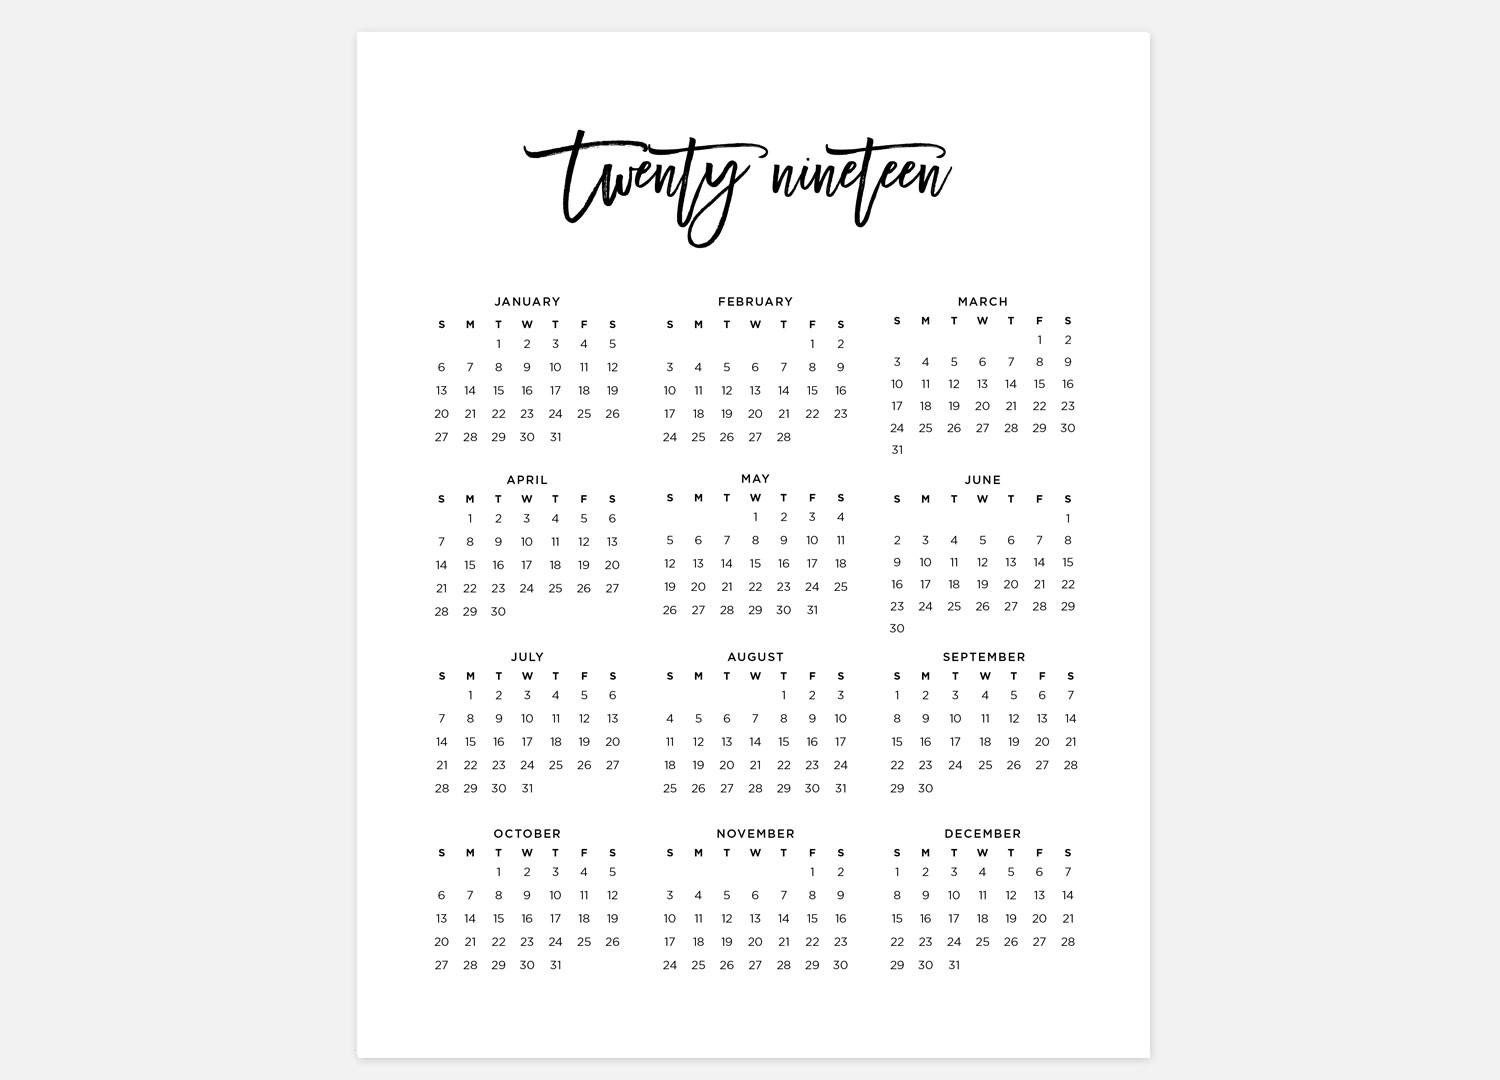 Printable Year At A Glance Calendar 2019 2019 Calendar Simple Calendar 2019 Year At A Glance